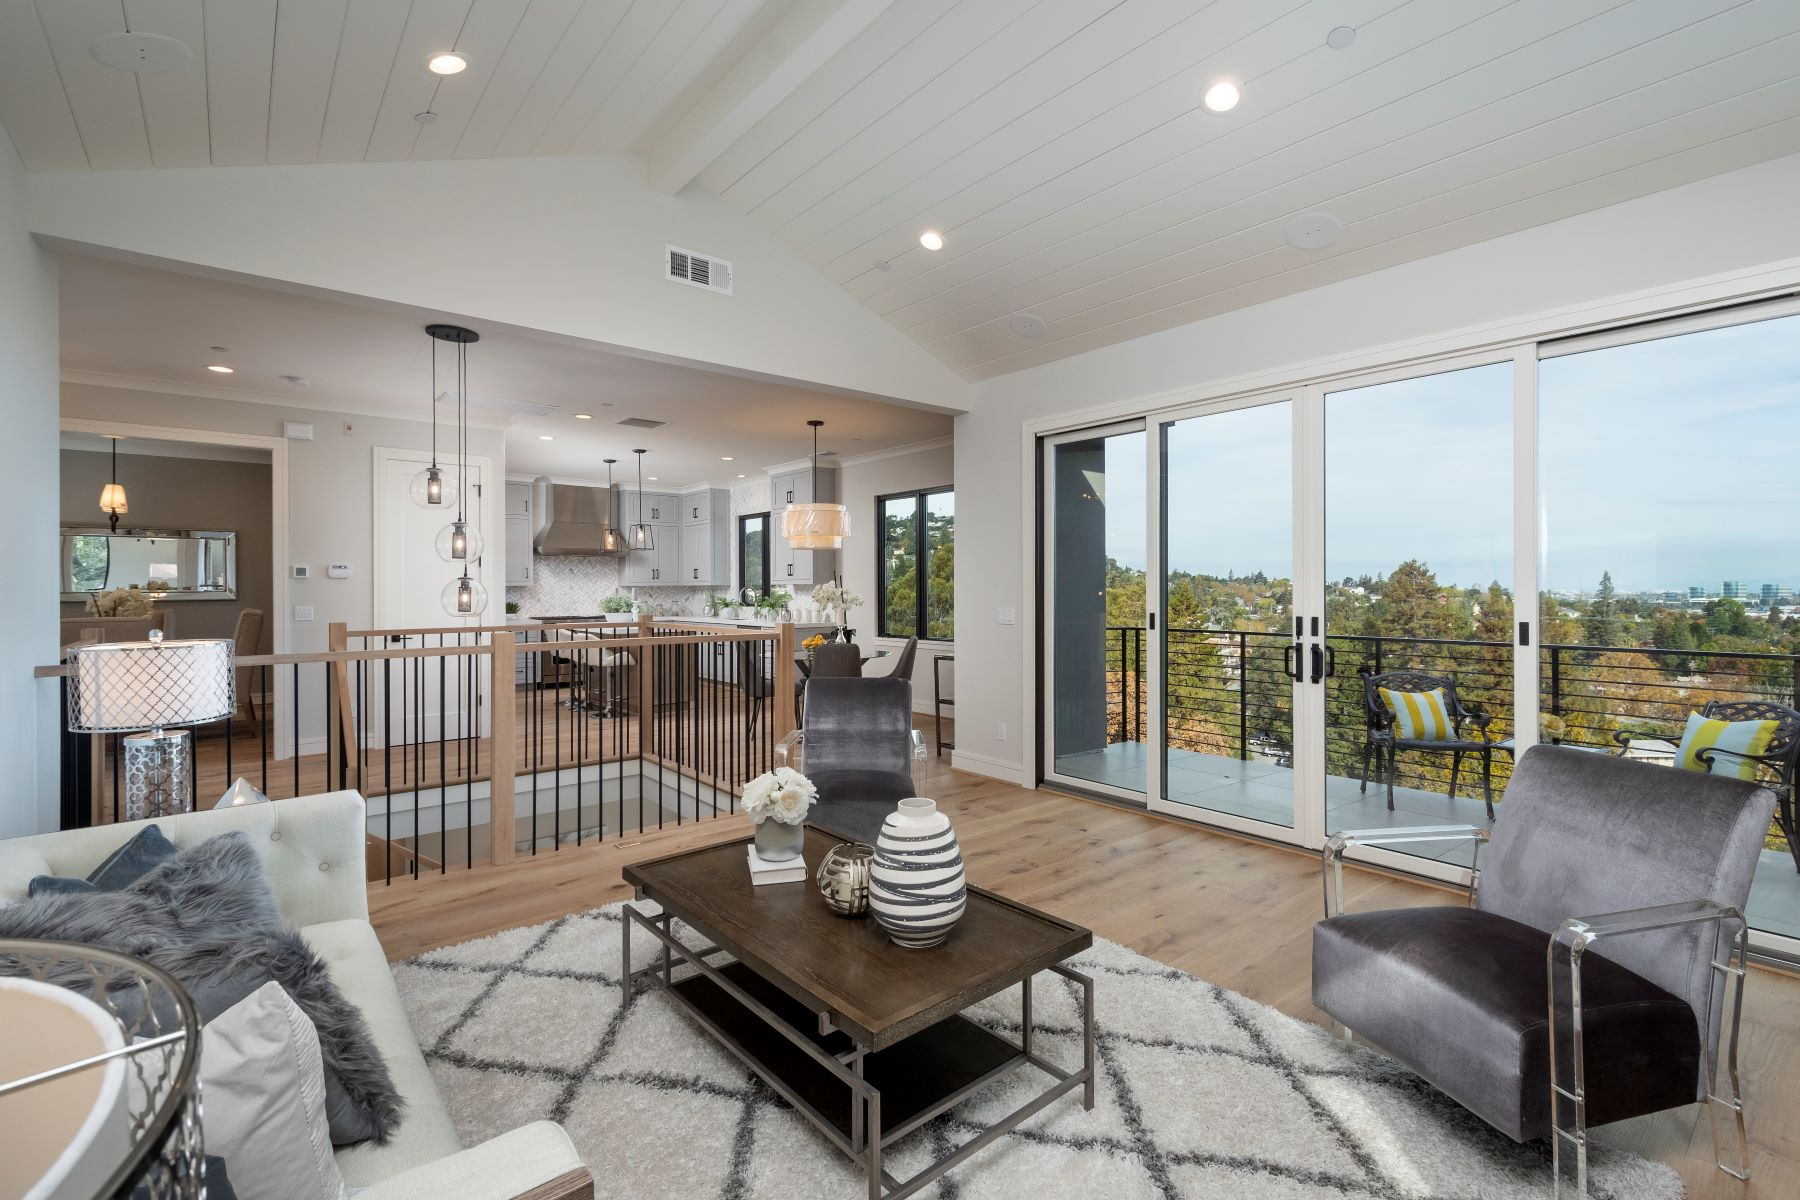 Single Family Home for Active at Coveted San Carlos Home 700 Knoll Drive San Carlos, California 94070 United States